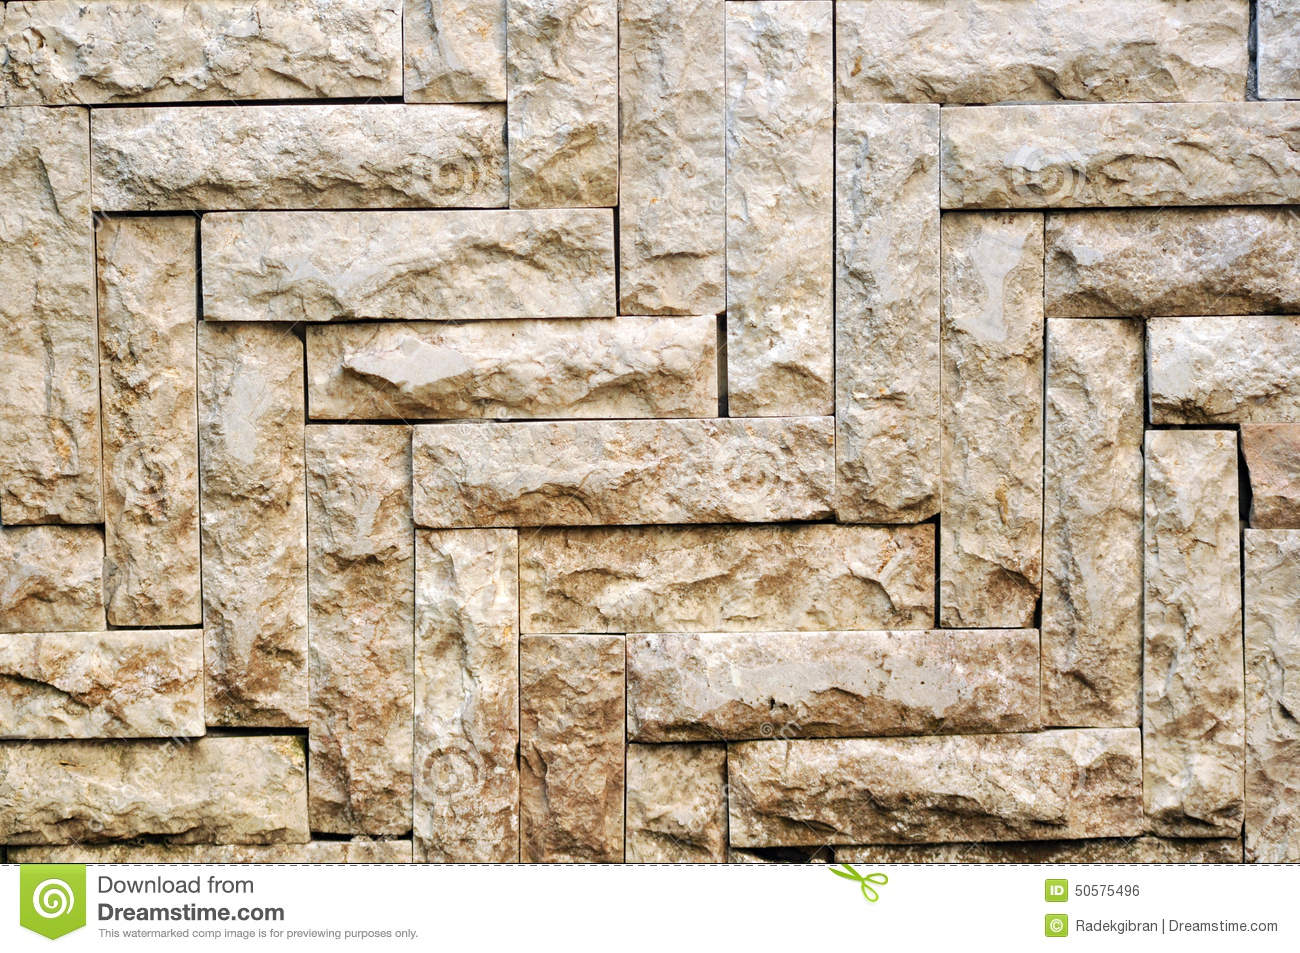 White stone tile texture brick wall backgrounds stock for Brick wall modern design